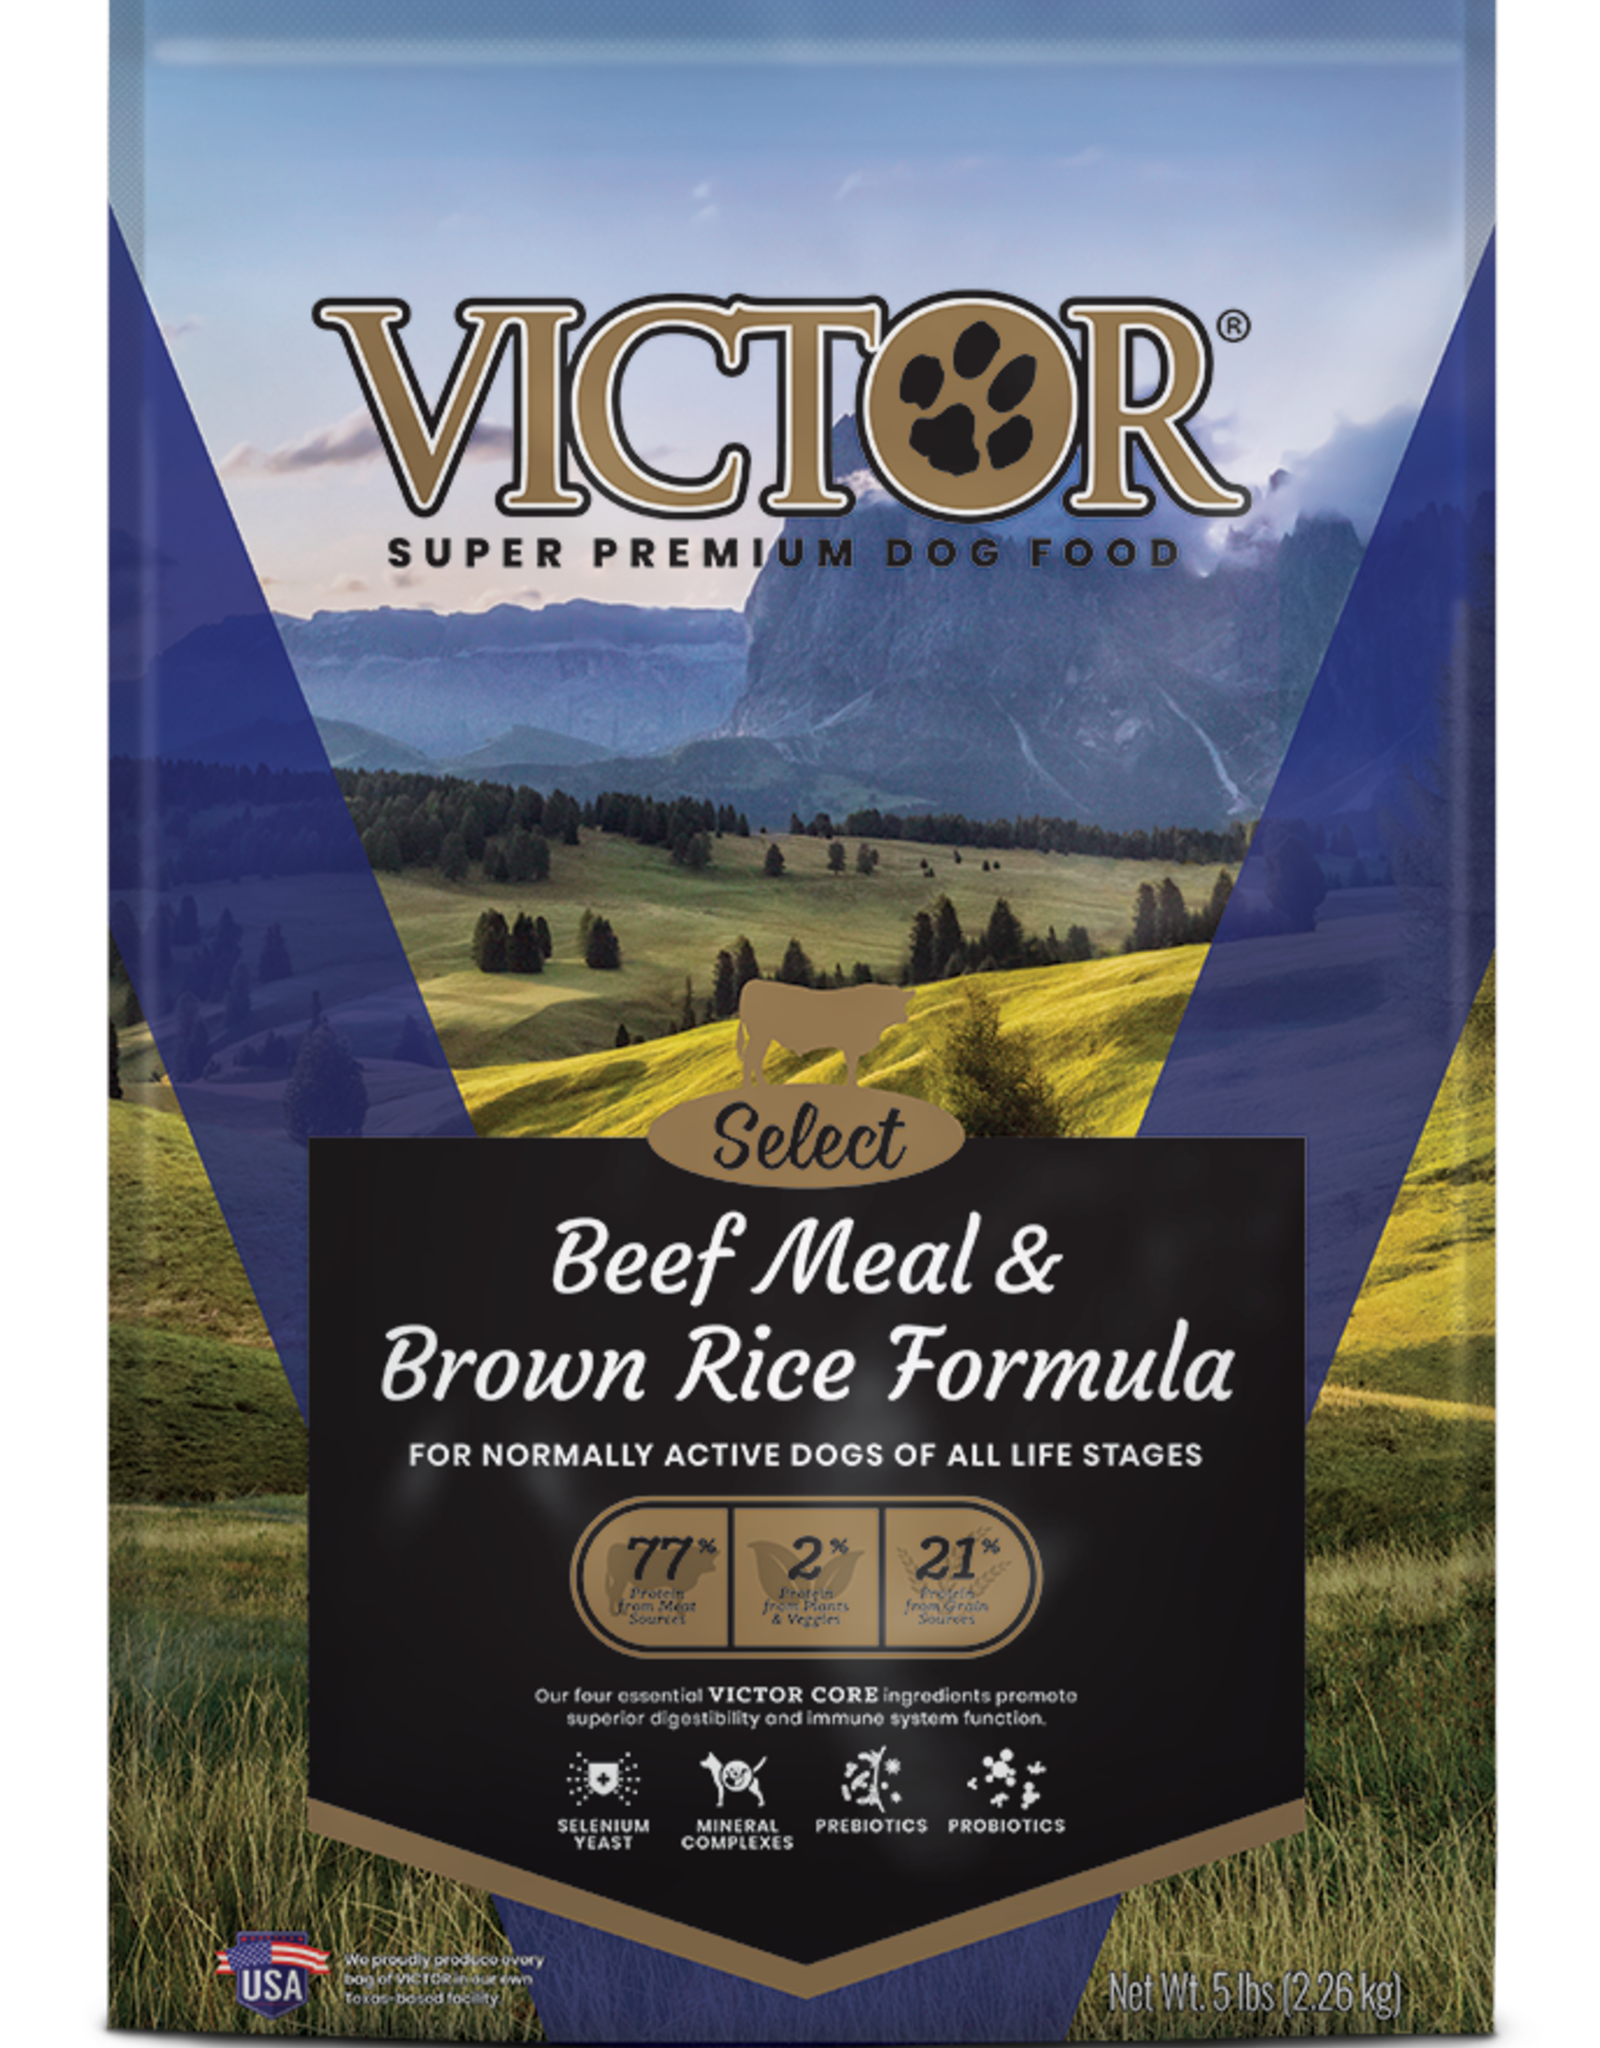 Victor Victor Dog Food Beef Meal & Brown Rice